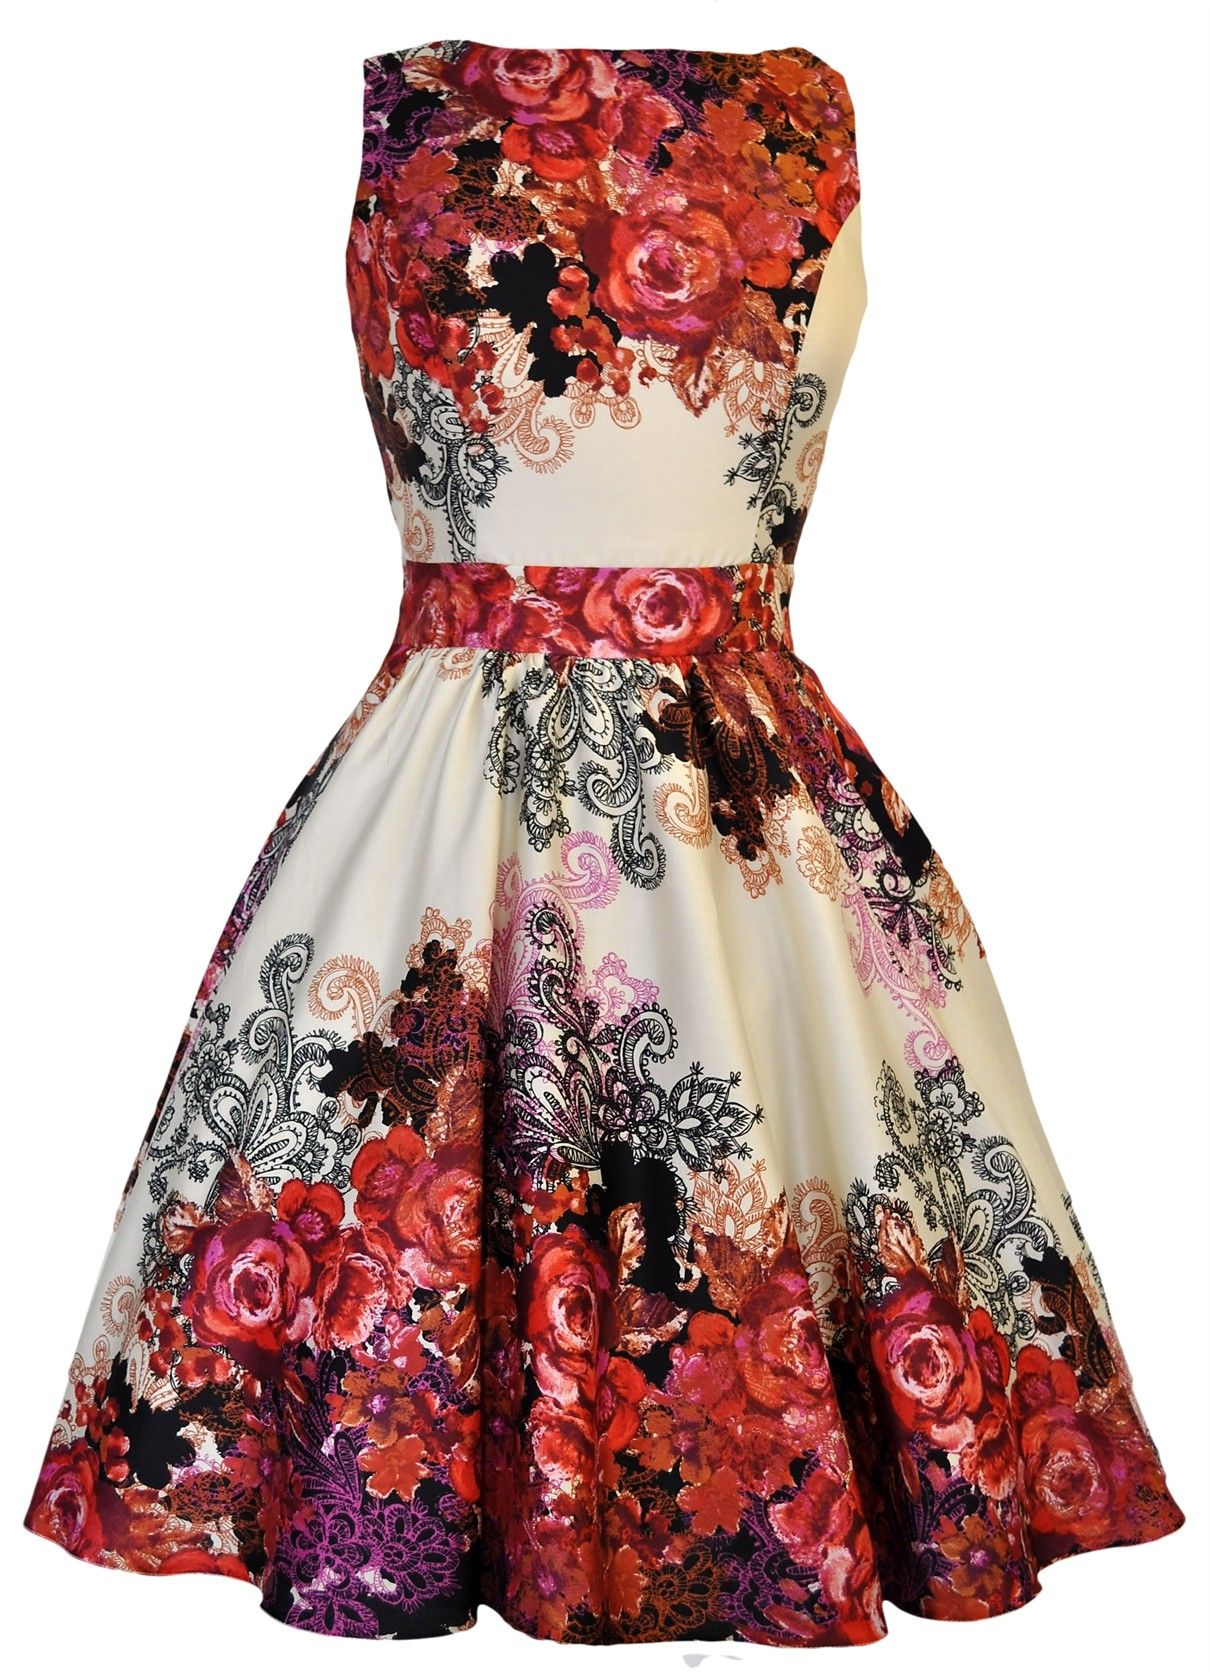 c6bf99b0faf1 Red Rose Floral Collage on Cream Tea Dress Vintage Šaty